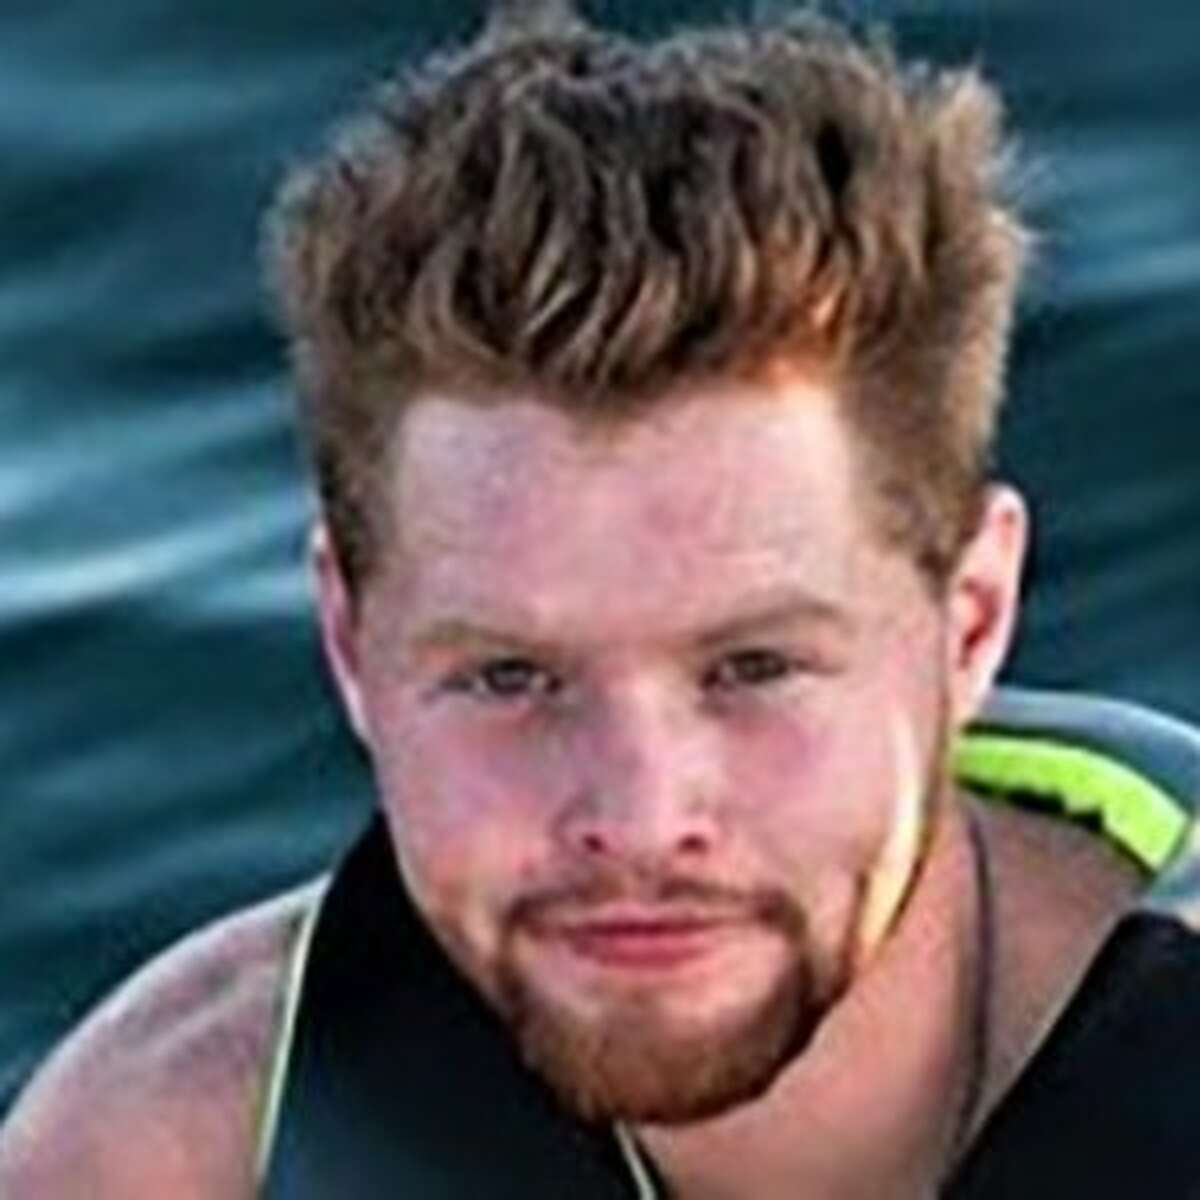 Authorities on Wednesday were searching for Cody Hansen, 21, who fell into the Houston Ship Channel last week between Baytown and La Porte.